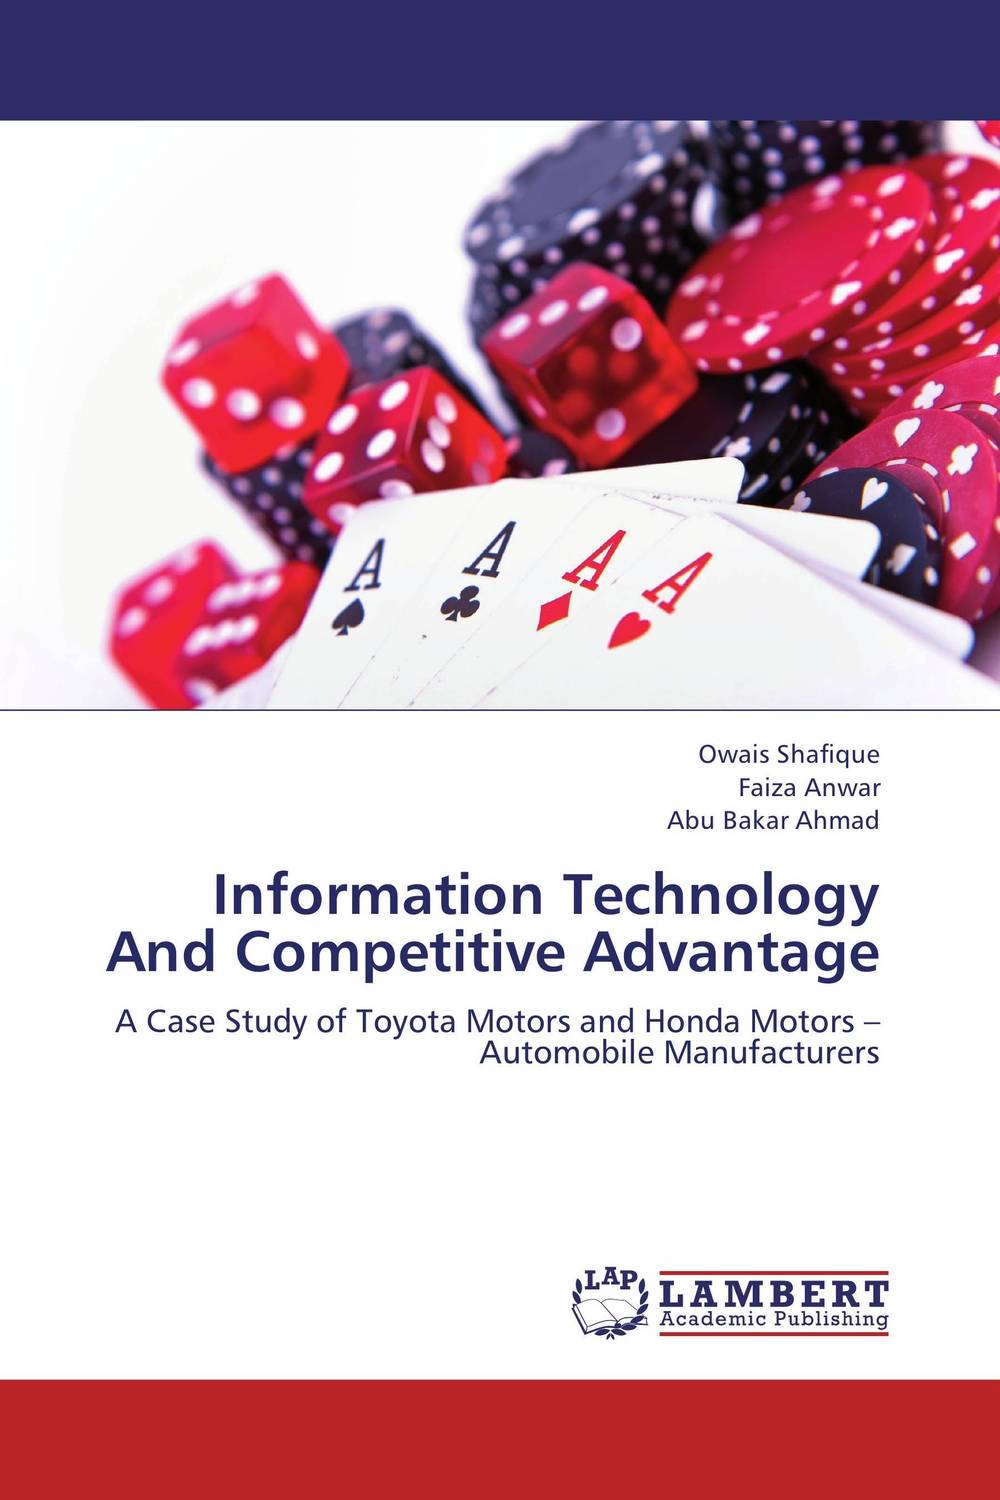 Information Technology And Competitive Advantage robert hillard information driven business how to manage data and information for maximum advantage